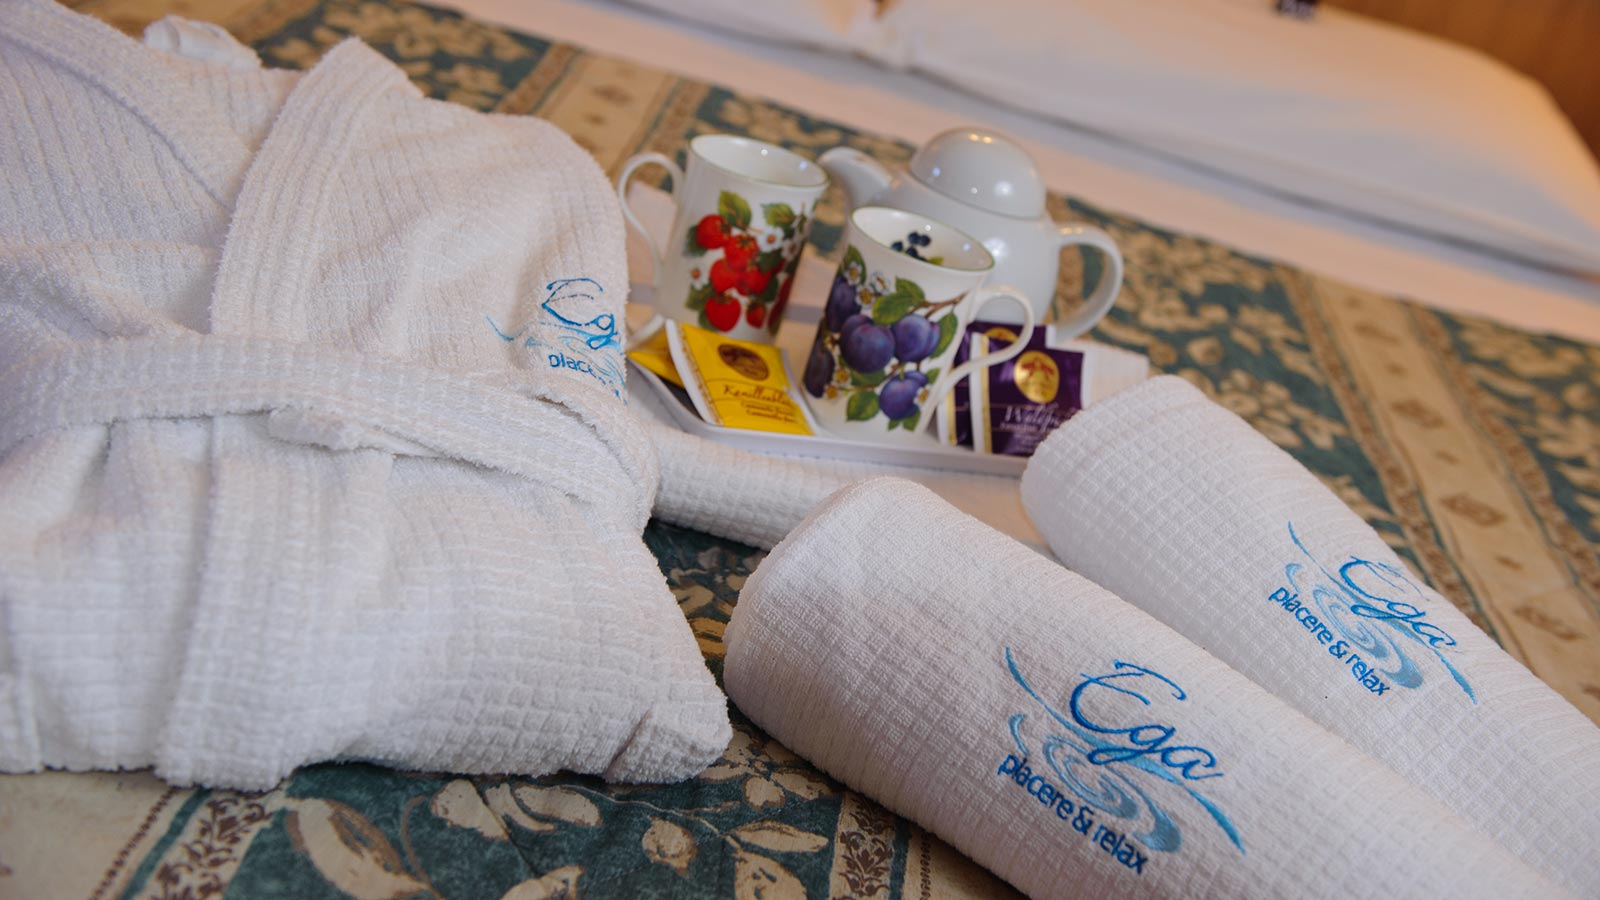 towels and bathrobe on a hotel room bed at La Serenella in Moena